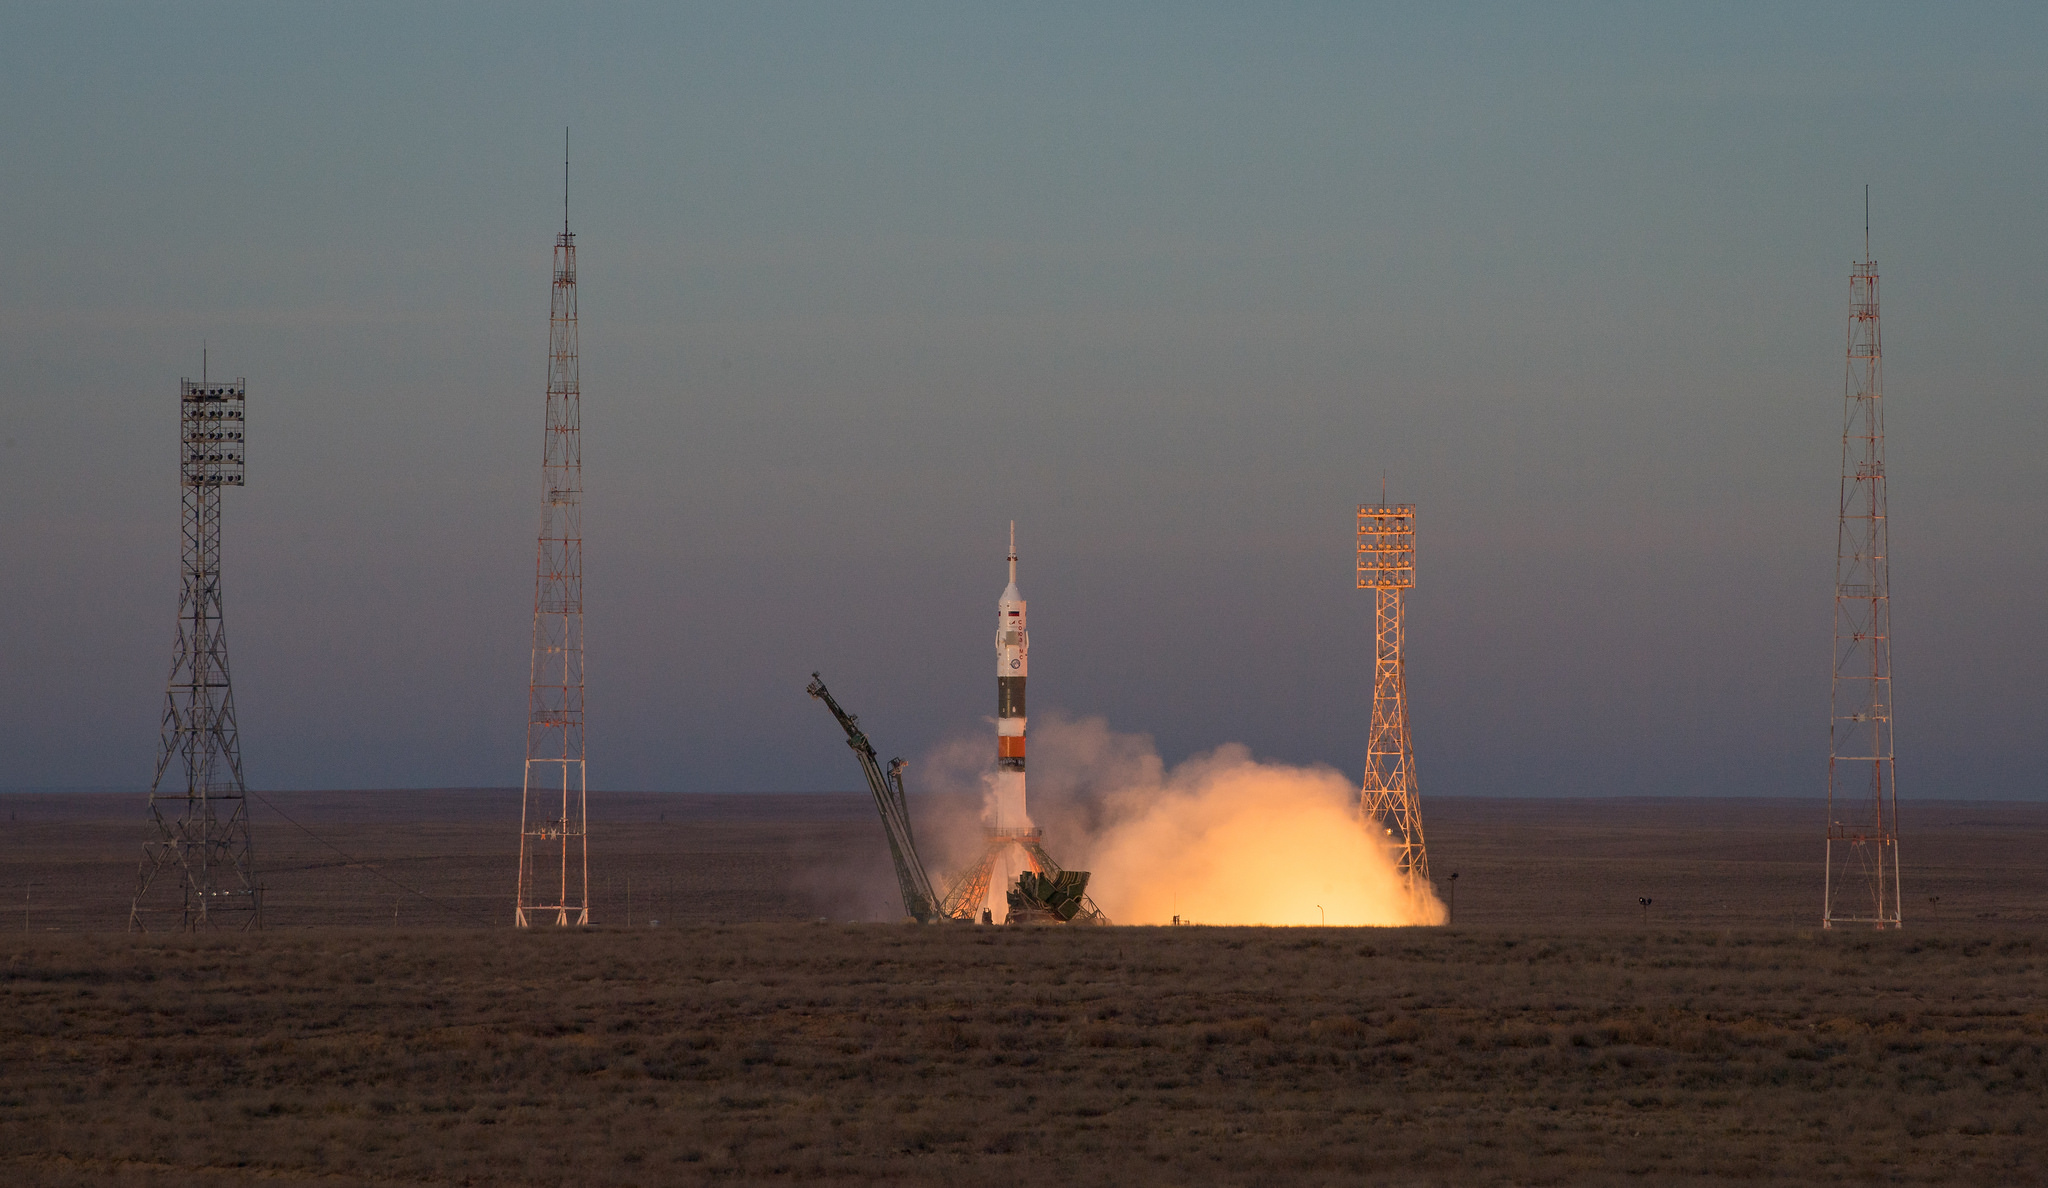 Newest Crew Launches for the International Space Station | NASA